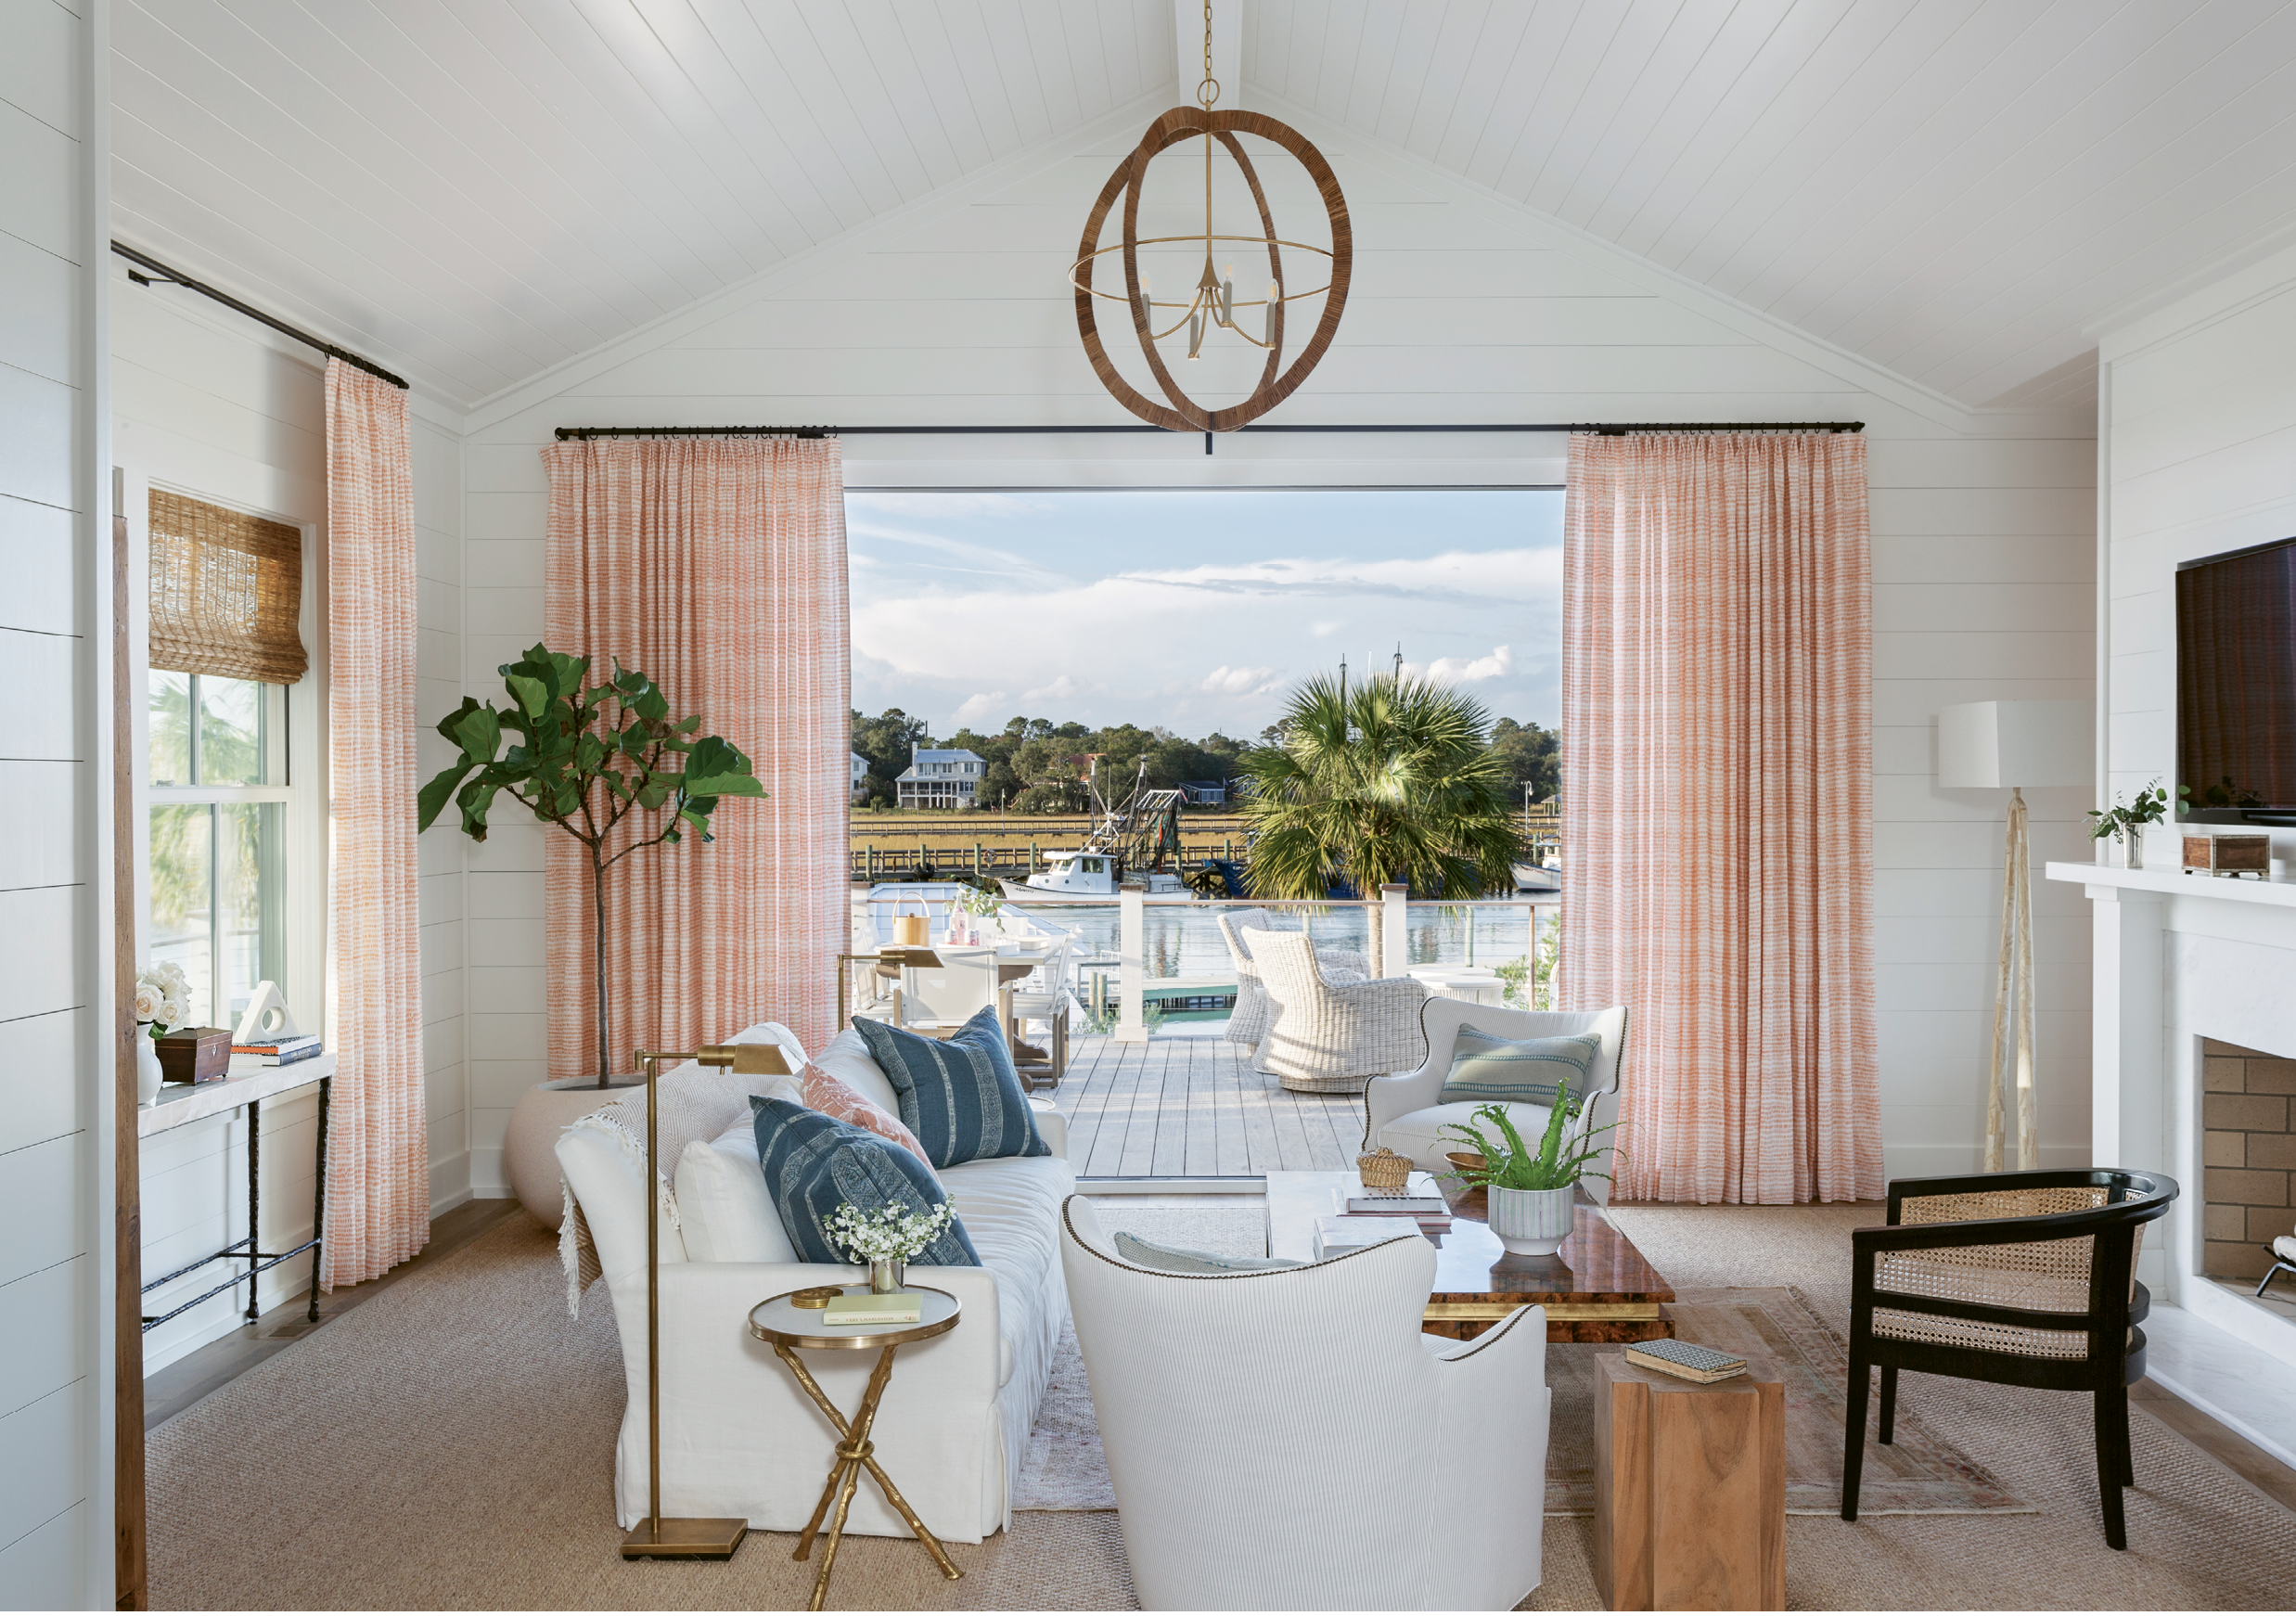 Calming hues repeat in the main sitting room, where tangerine linen curtains in a Rebecca Atwood print flutter through the breeze wafting in from Shem Creek.